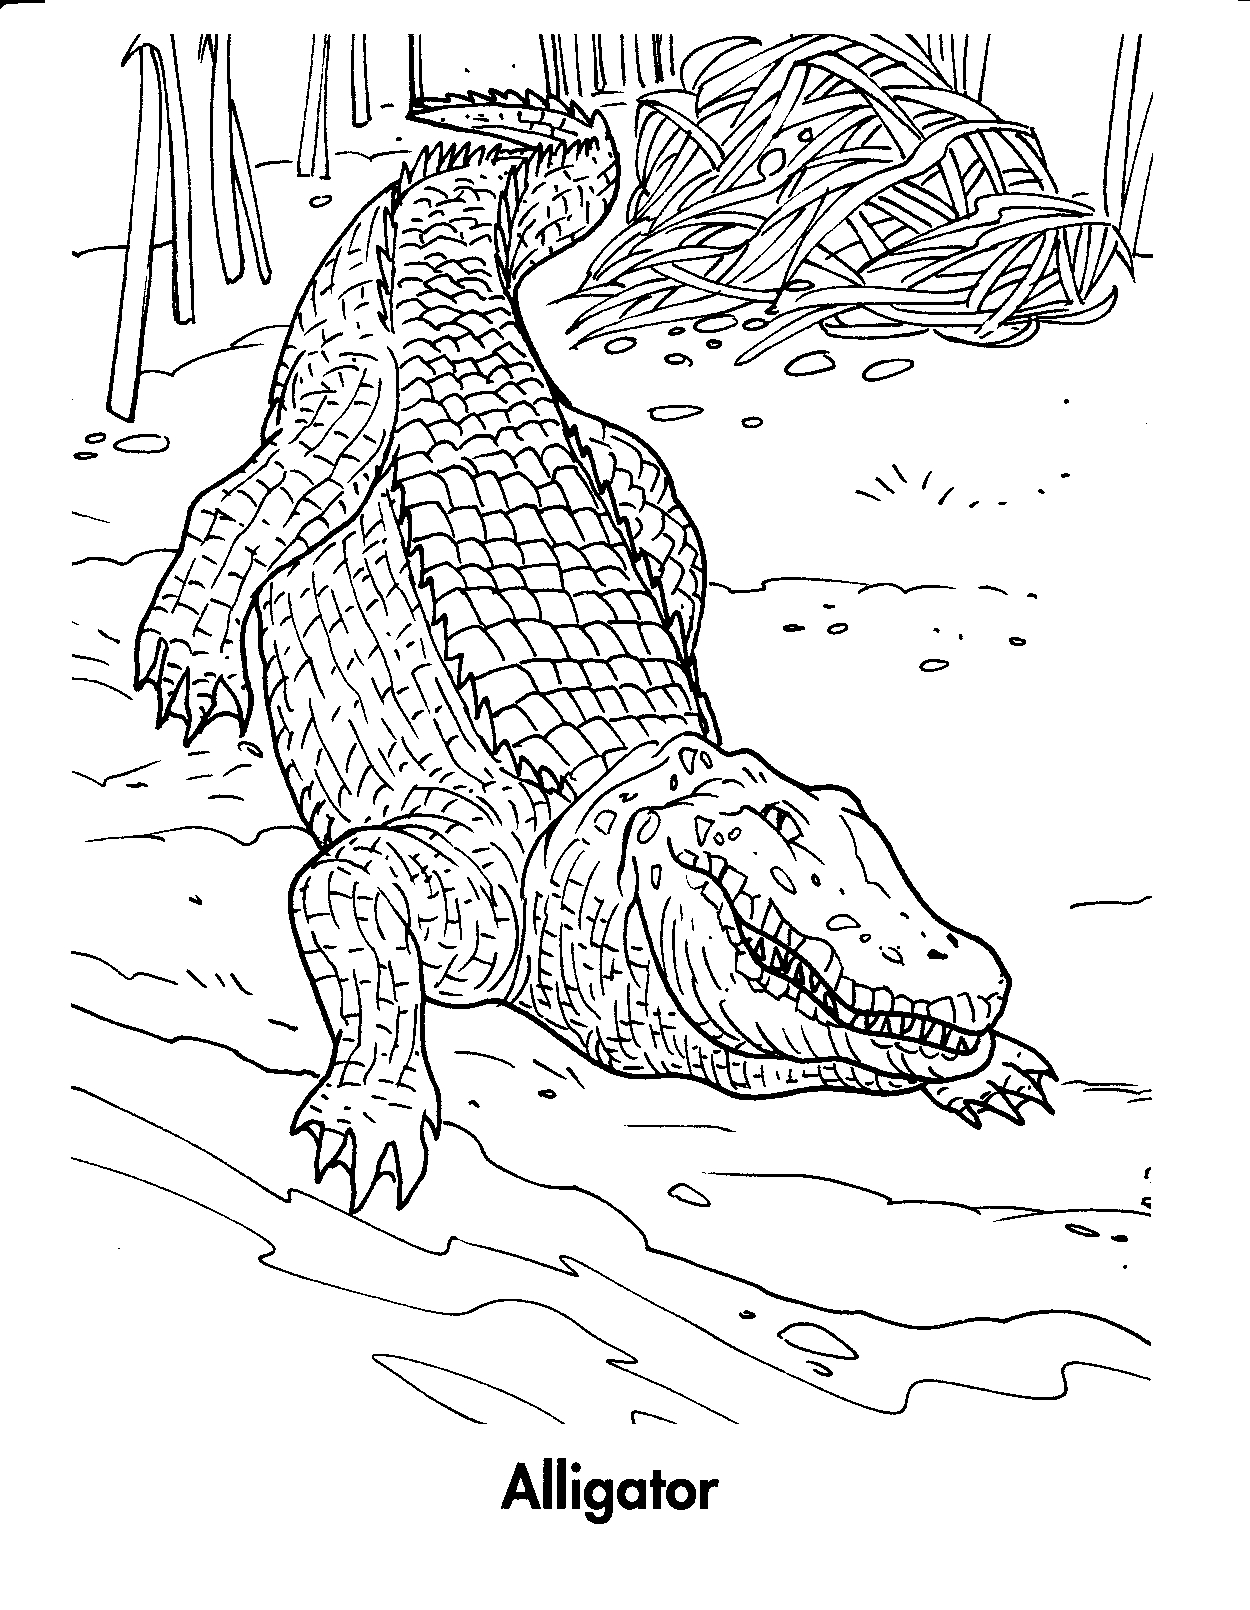 Uncategorized Crocodile Coloring Pages To Print free printable crocodile coloring pages for kids kids